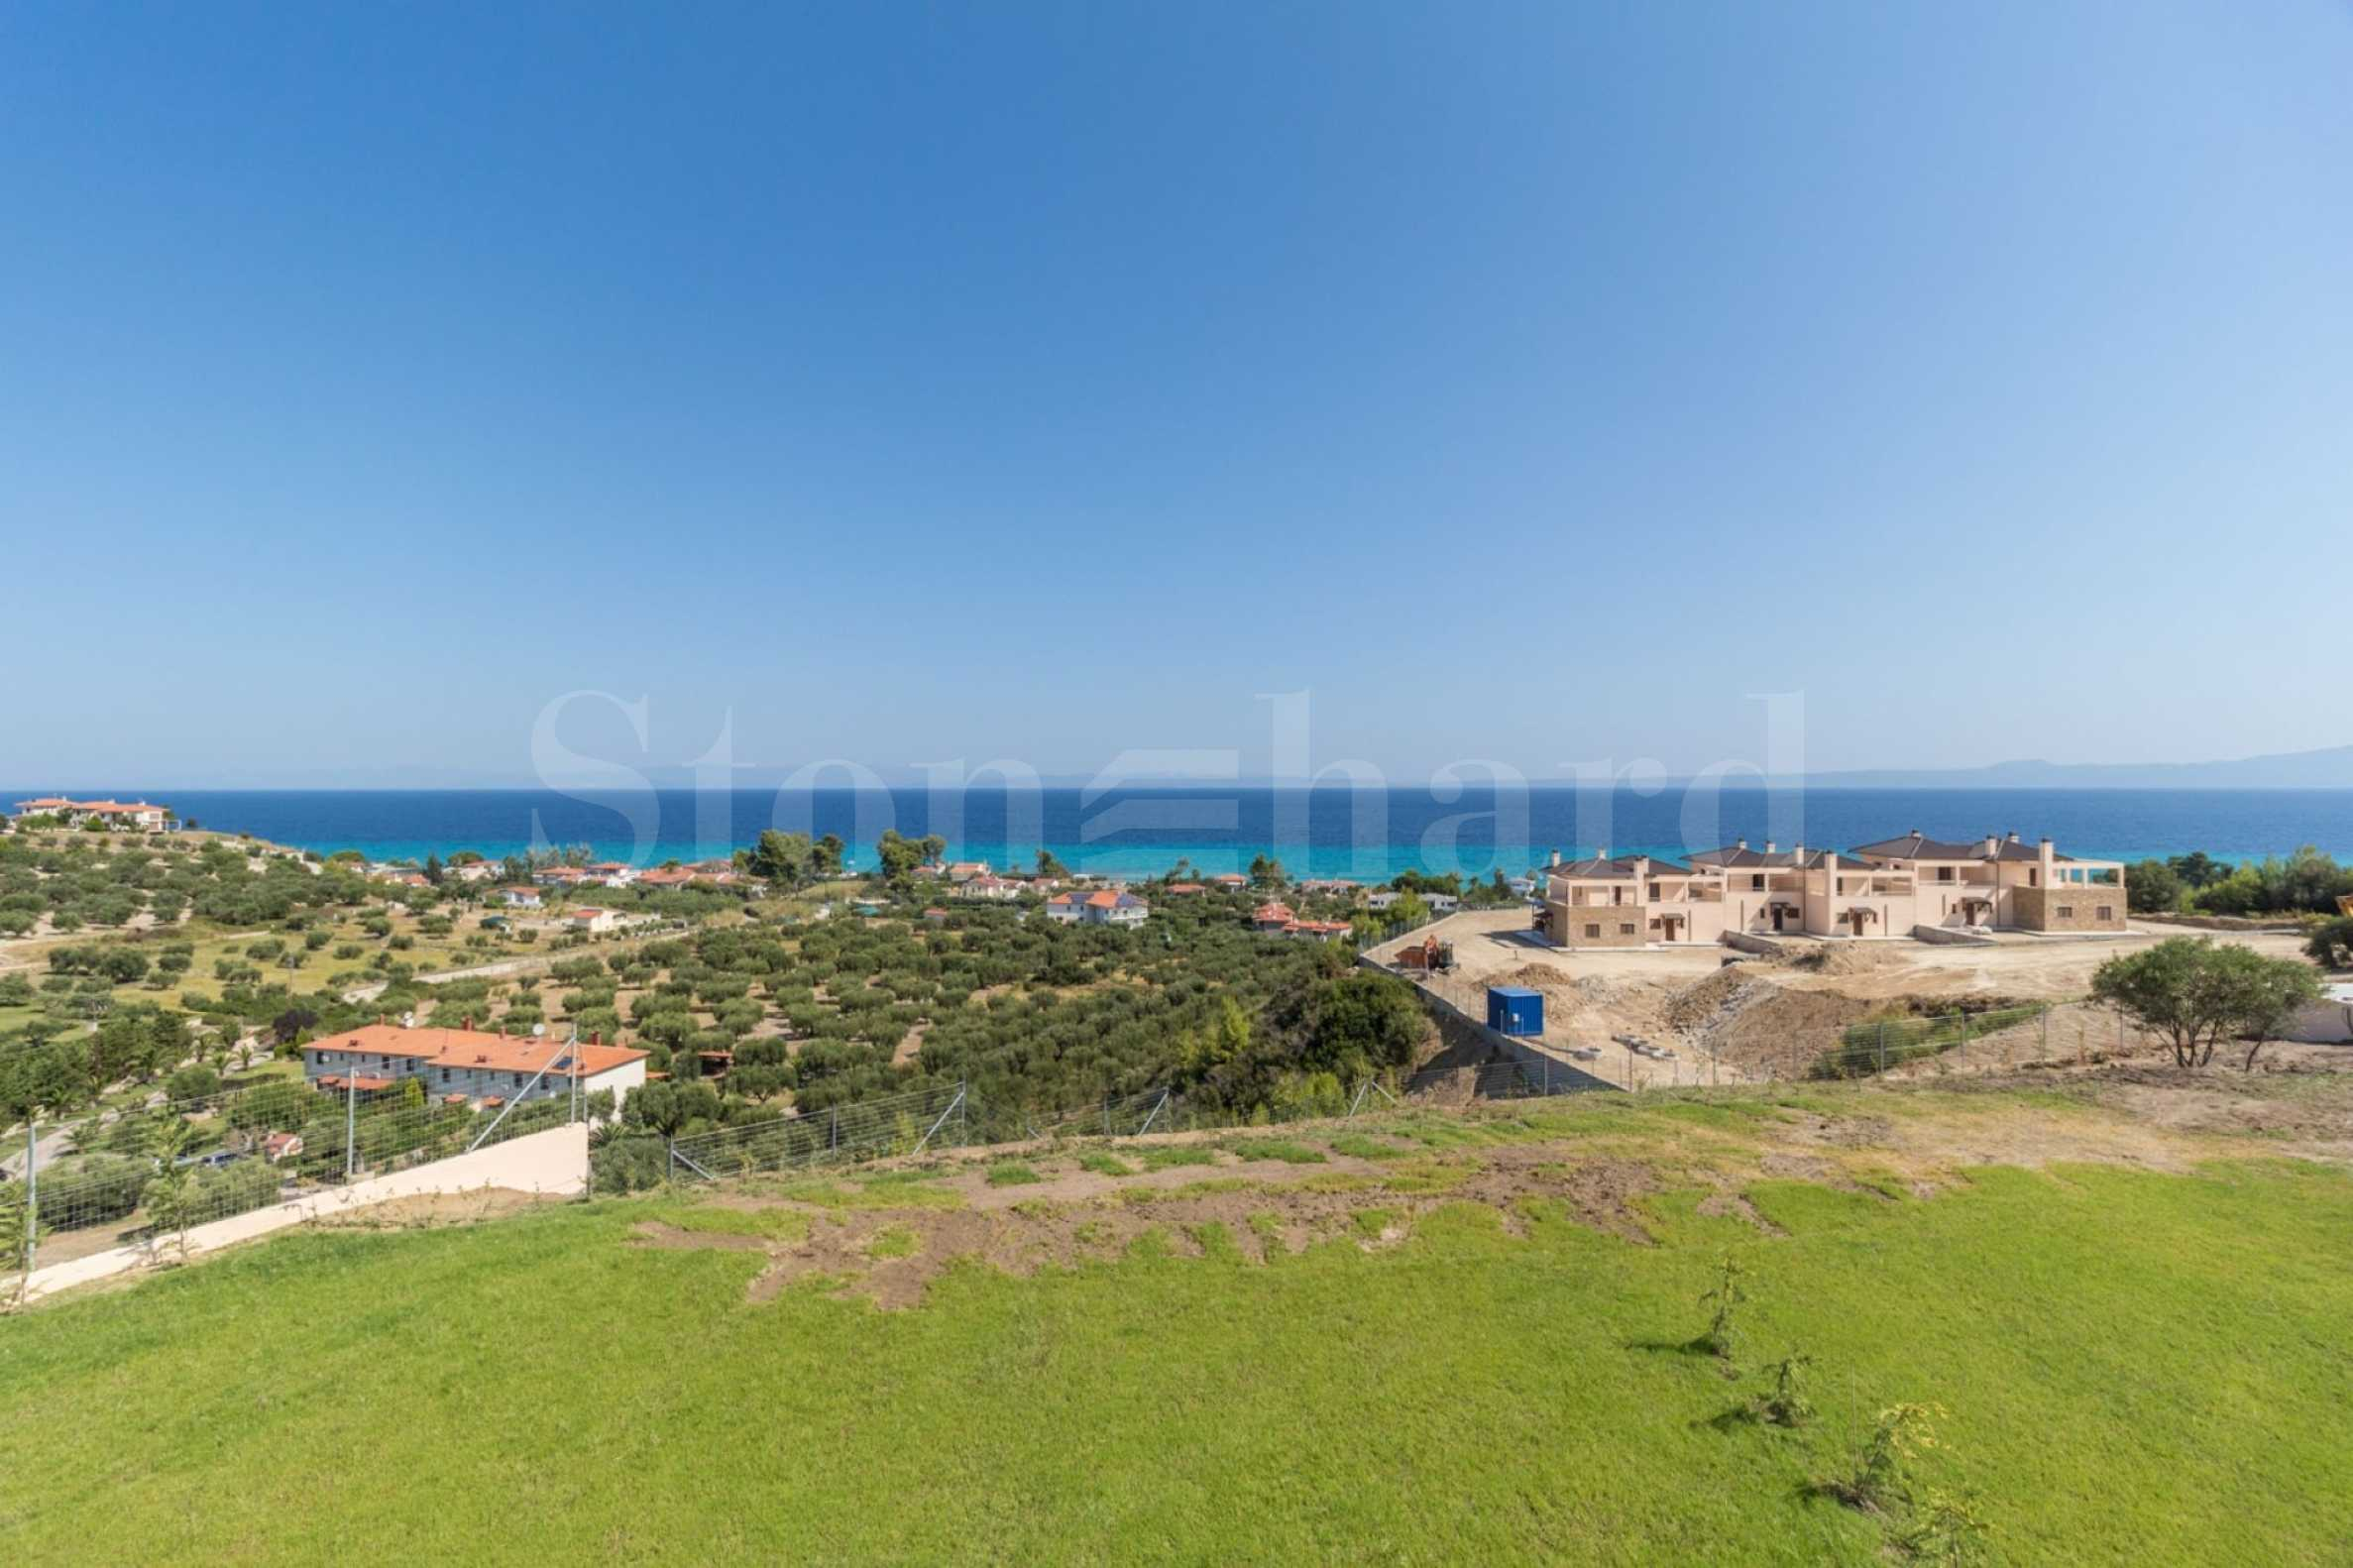 Newly built house for sale in a picturesque seaside resort of Hanioti, Greece1 - Stonehard